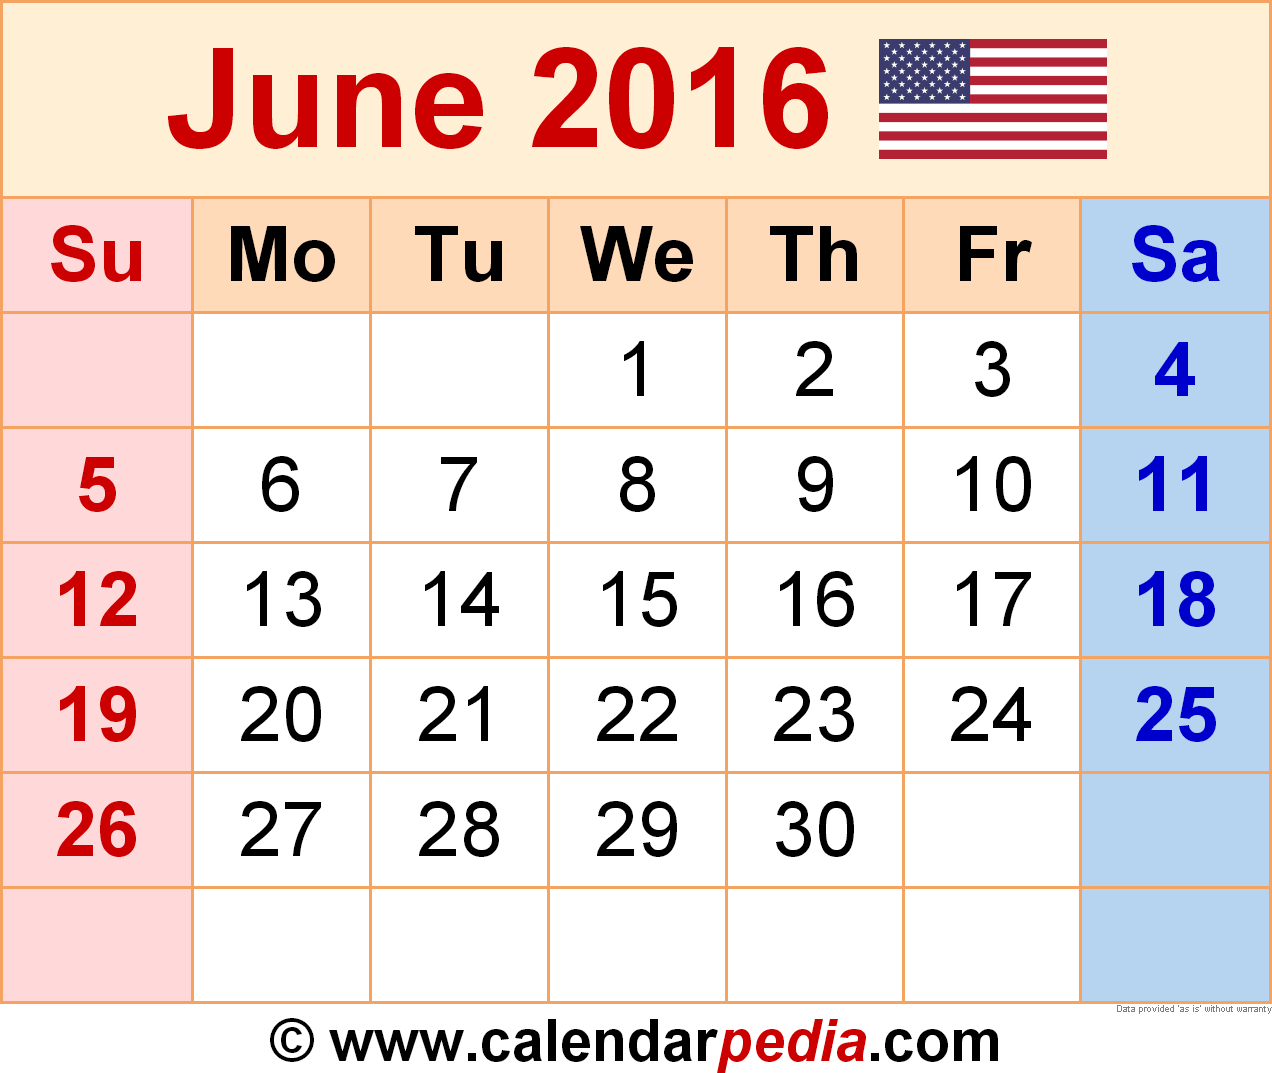 June  Calendar As A GraphicImage File In Png Format  For